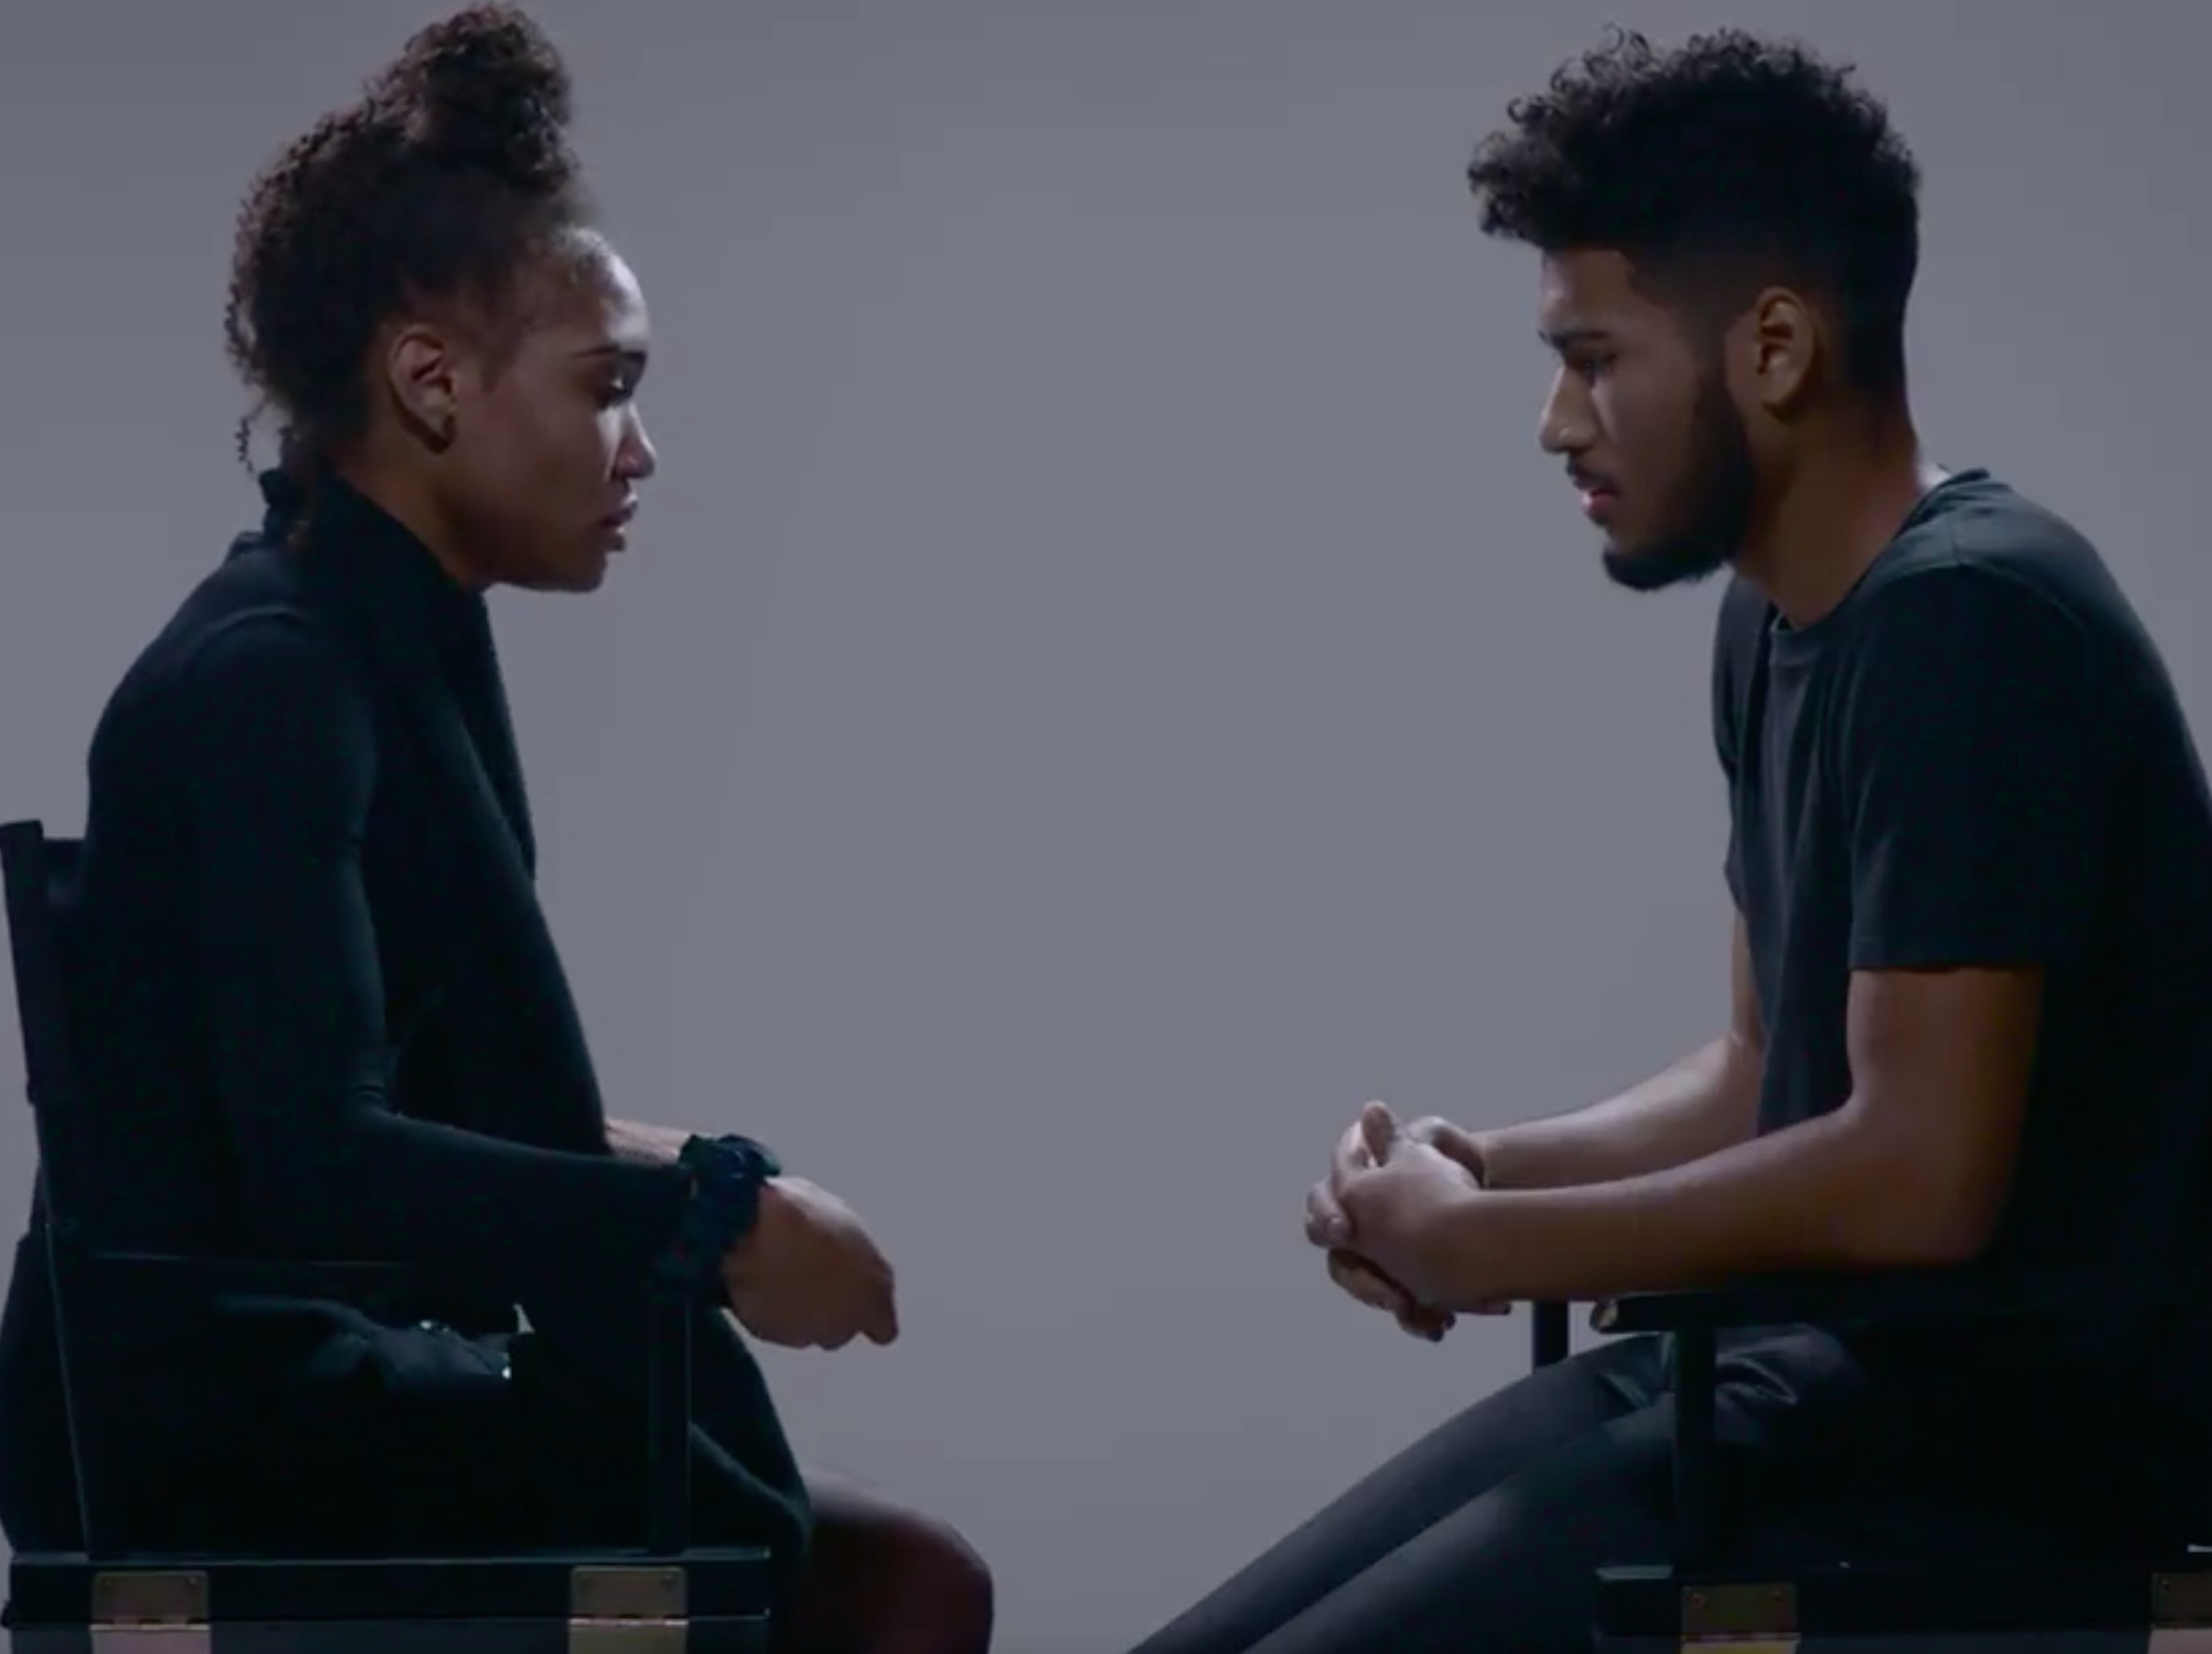 HurtBae's Pain Exposes How Men Perceive Infidelity Differently